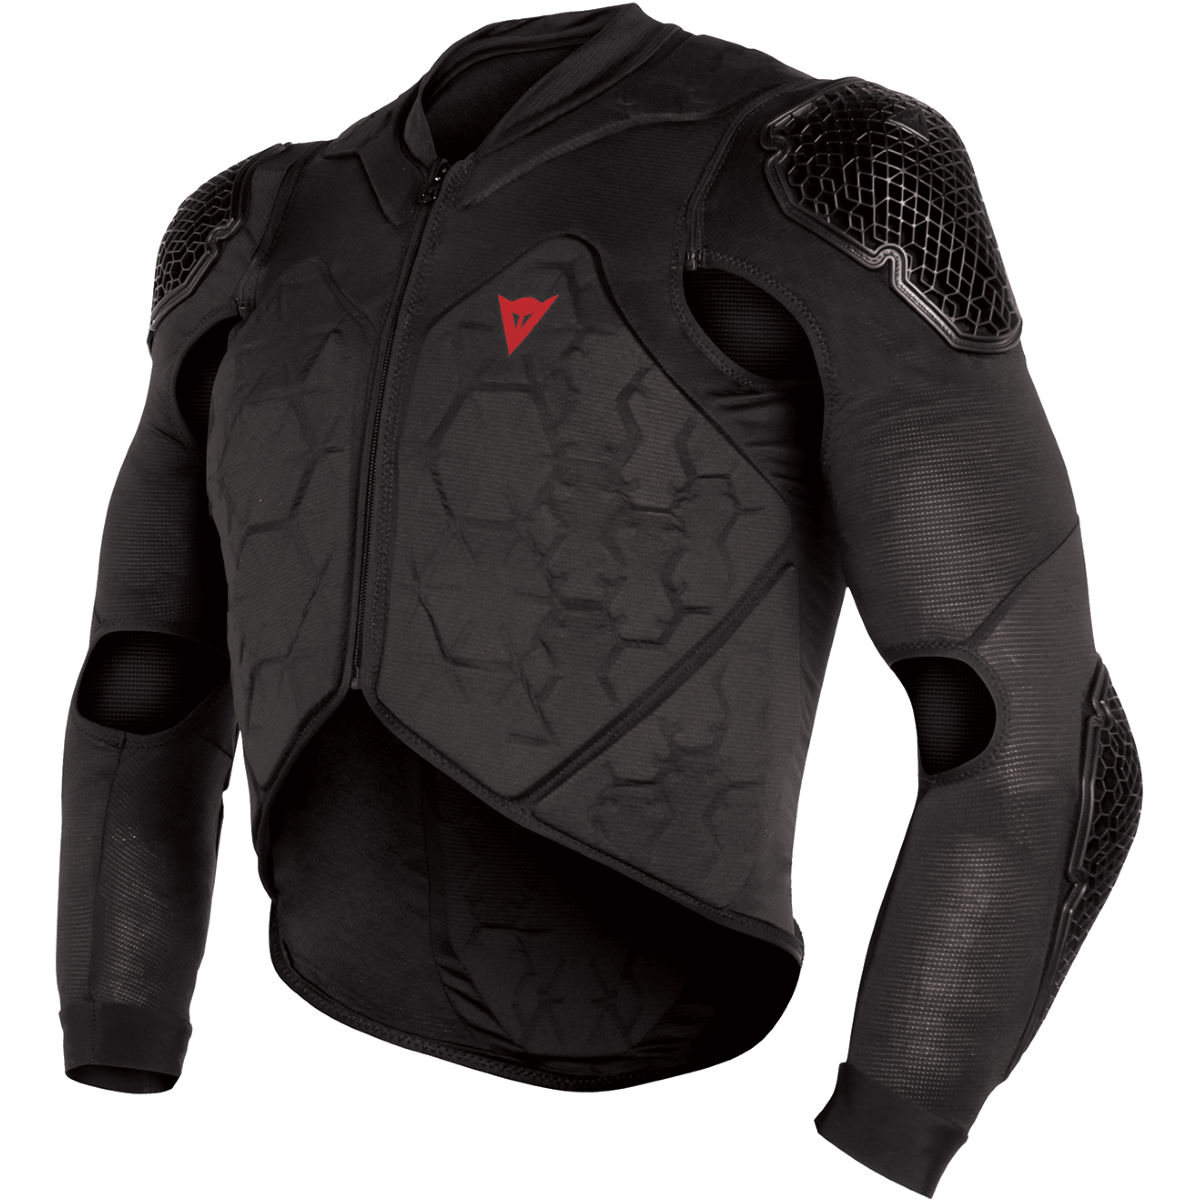 Dainese Dainese Rhyolite 2 Safety Jacket   Body Protectors